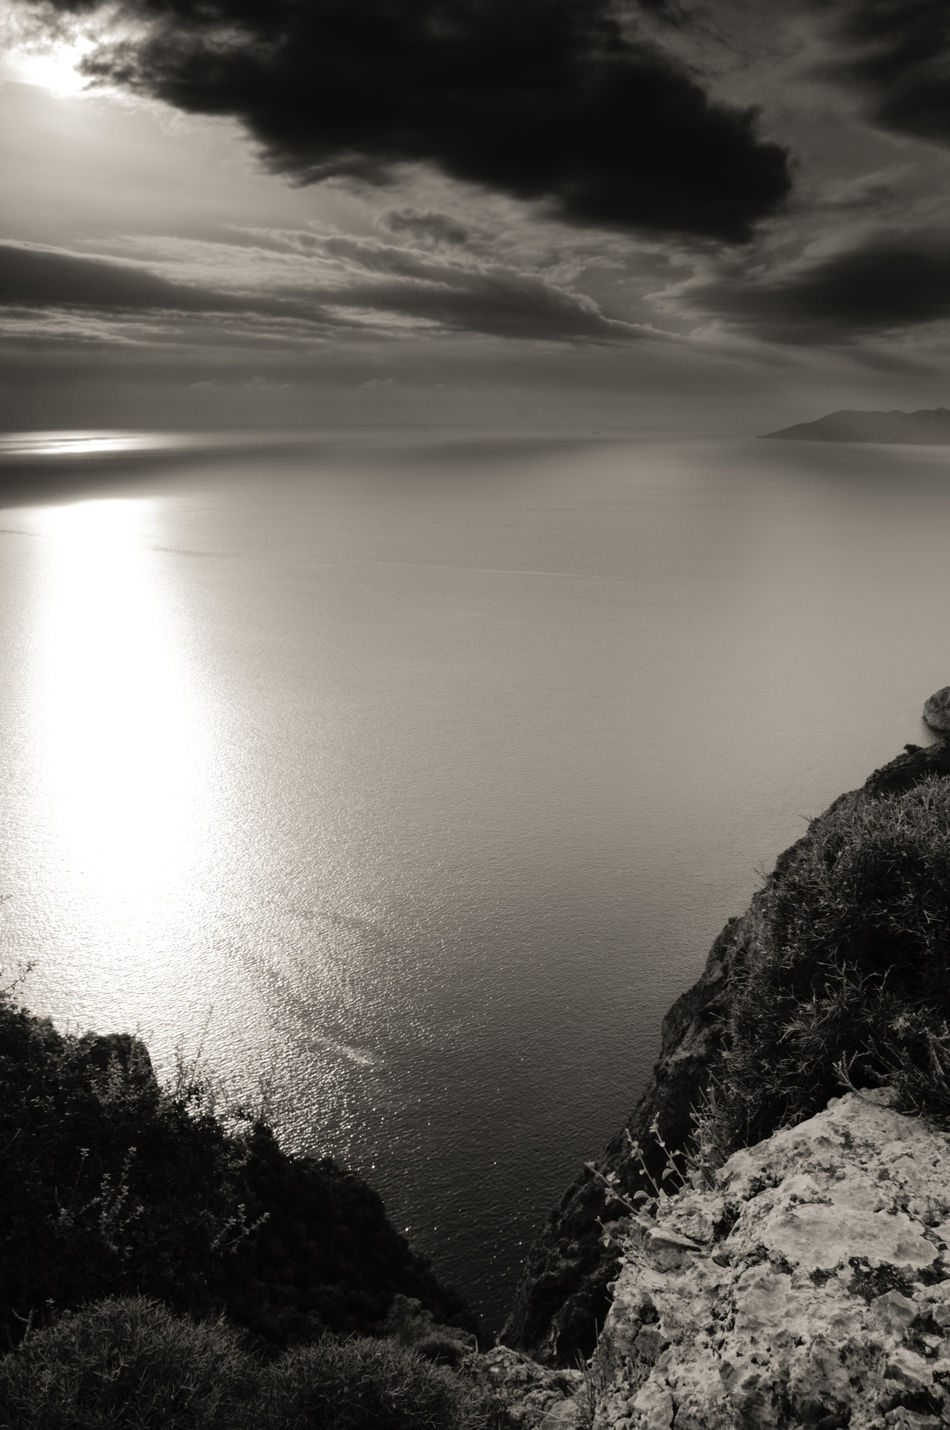 Peering over the top of a sheer cliff at a sea as smooth as butter and a moody sky hanging overhead Calm Sea Cliff Top View Cloudy And Moody Sky Day Hidden Sun Landscape Monochrome Shot Nature No People Outdoors Rocks Tranquil Scene Turkey